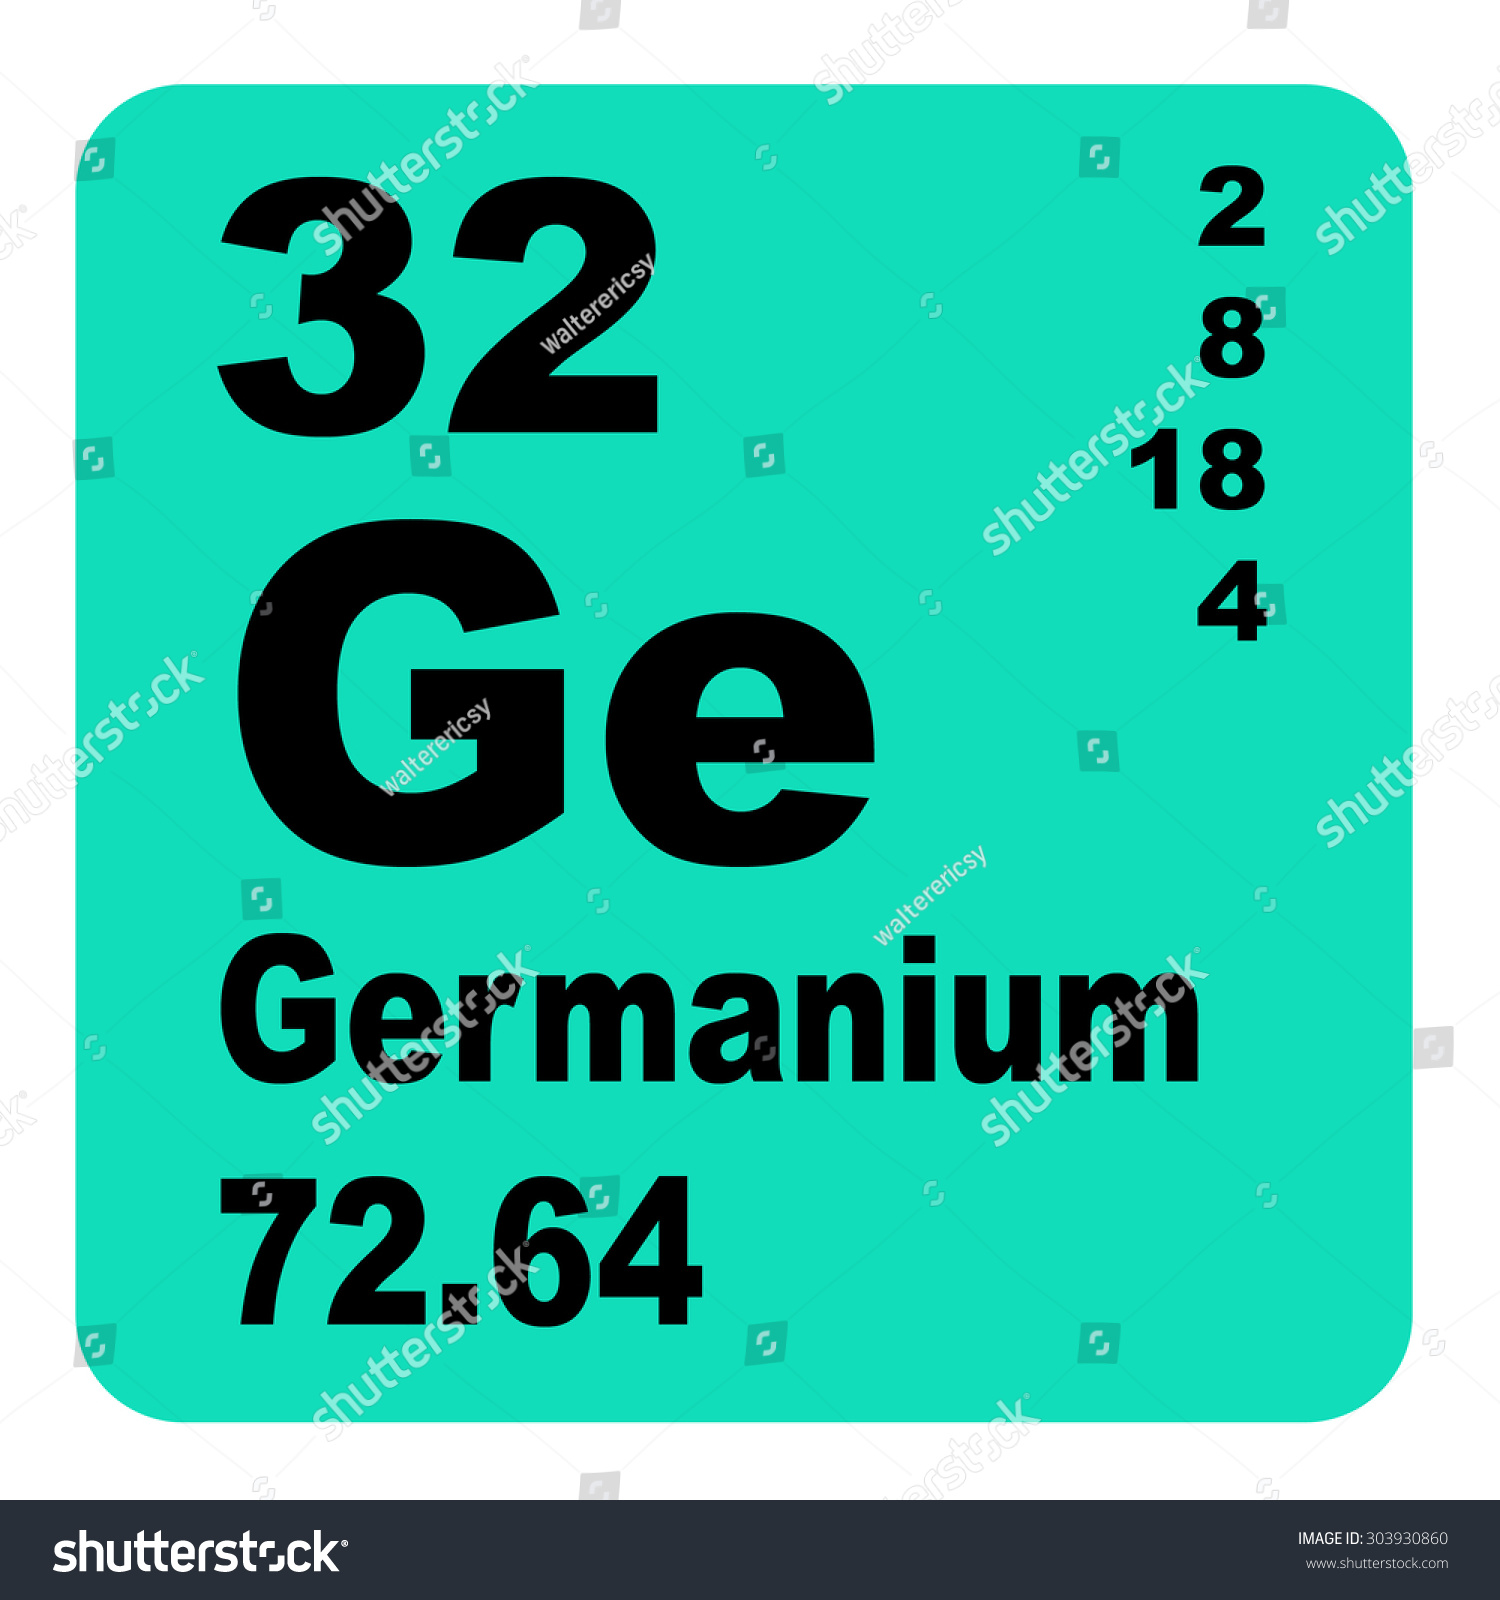 Germanium in periodic table choice image periodic table images germanium in periodic table choice image periodic table images germanium periodic table elements stock illustration 303930860 gamestrikefo Image collections